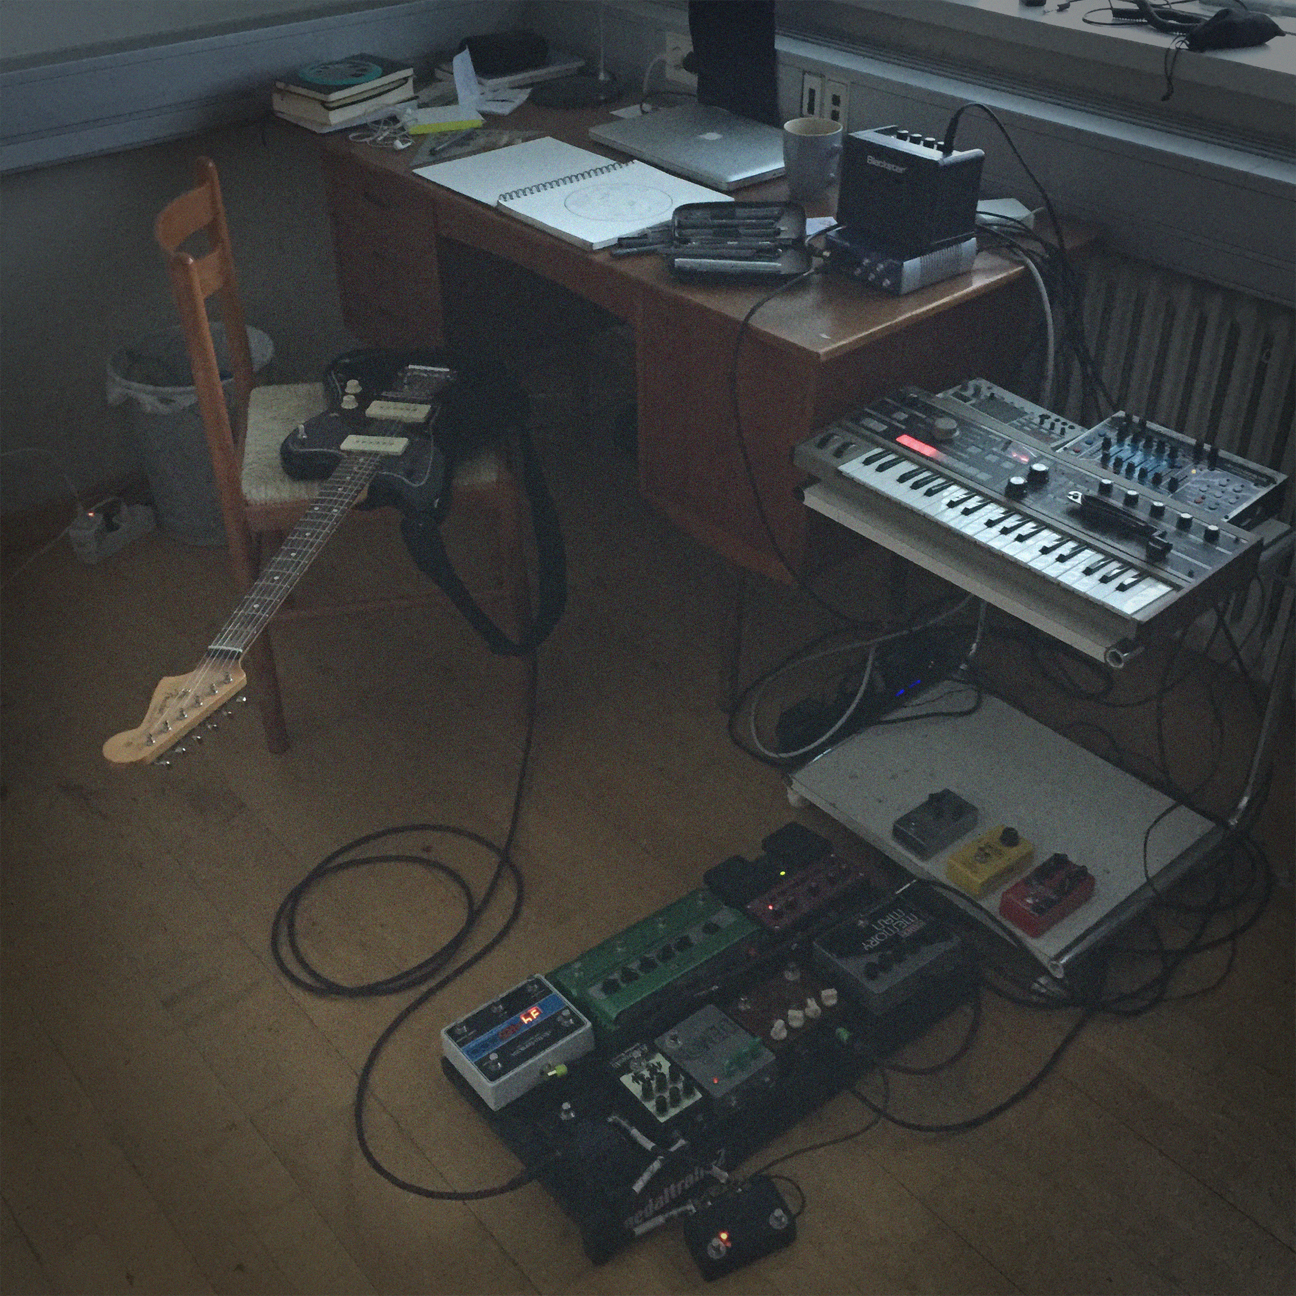 My studio space at the SIM Residency in Reykjavik, Iceland